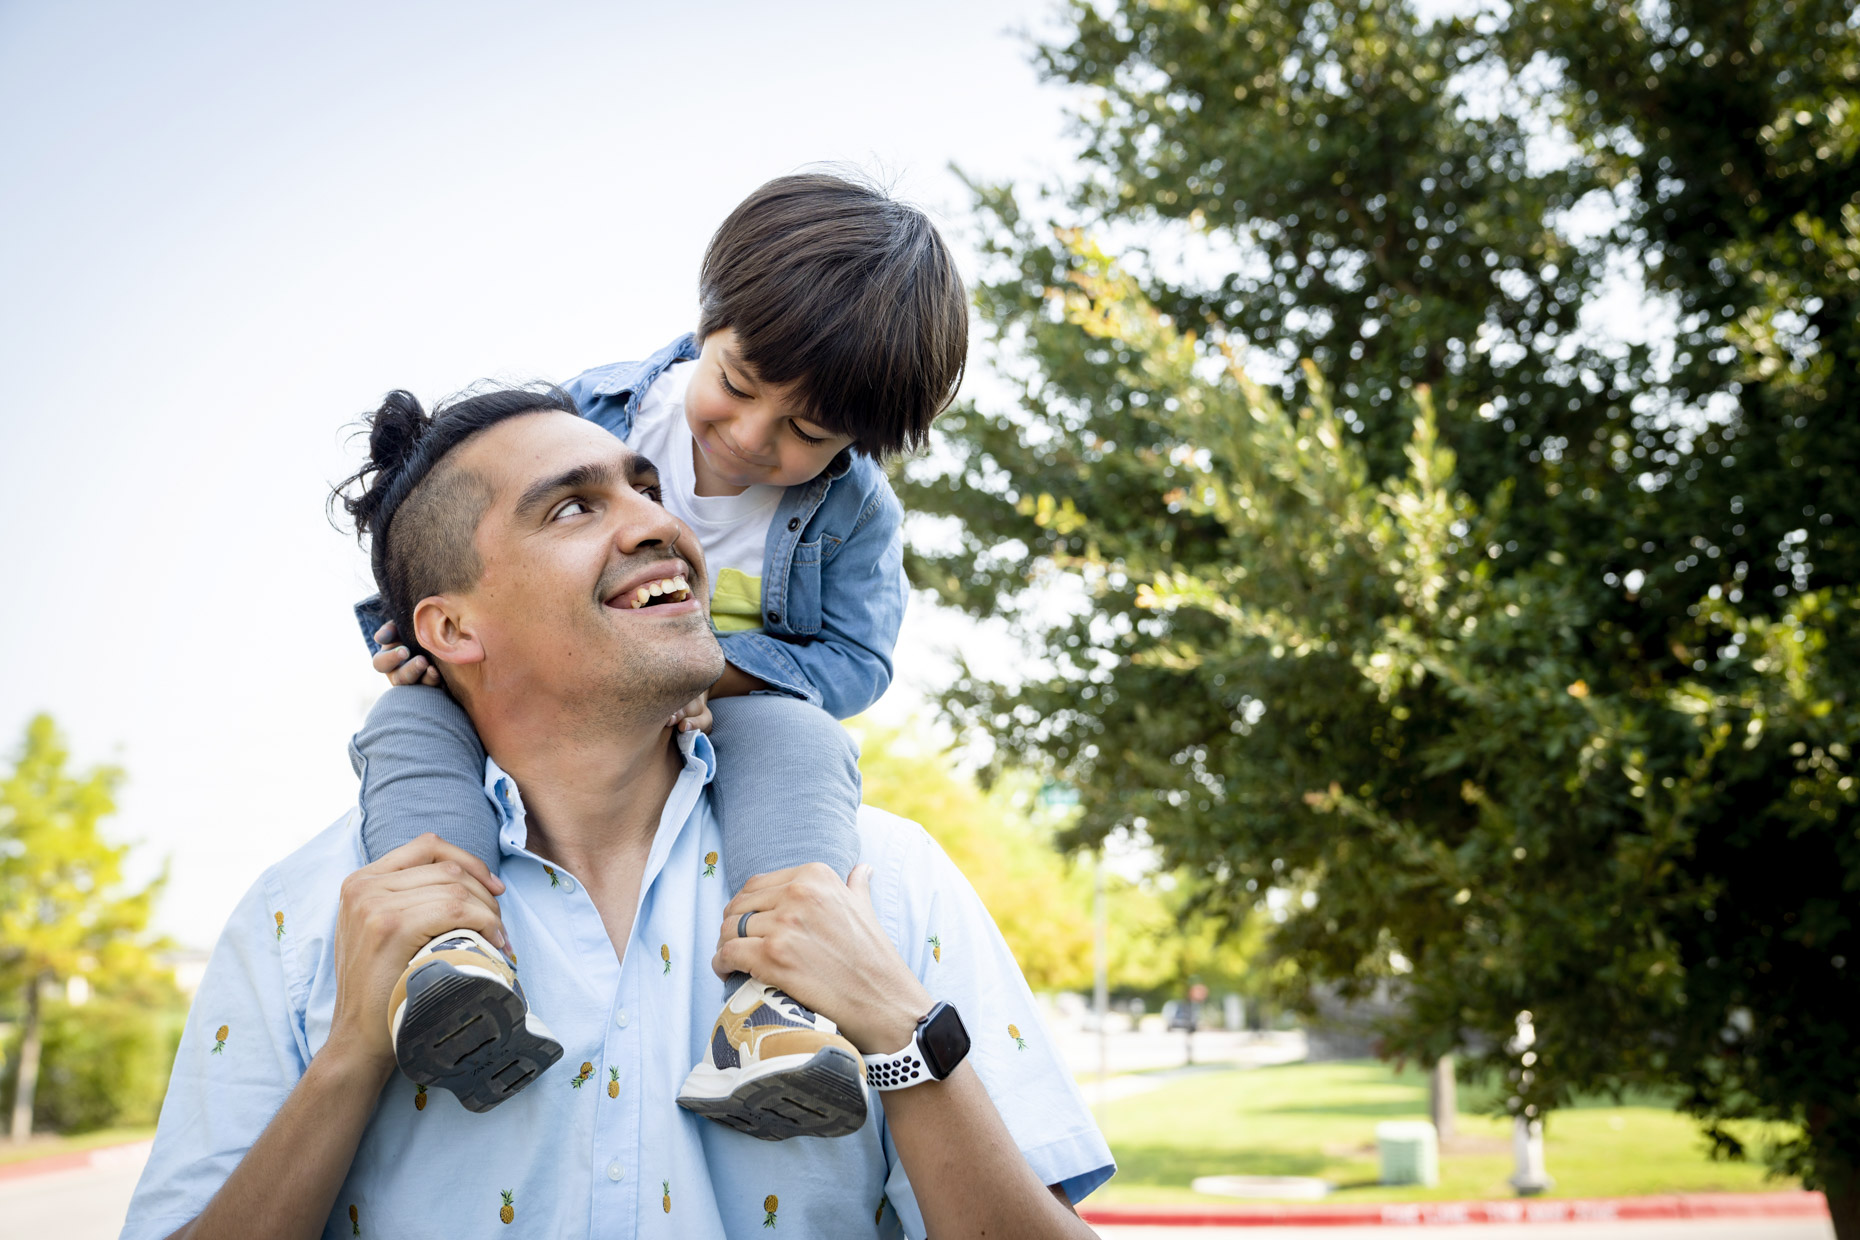 Smiling dad carrying son on shoulders